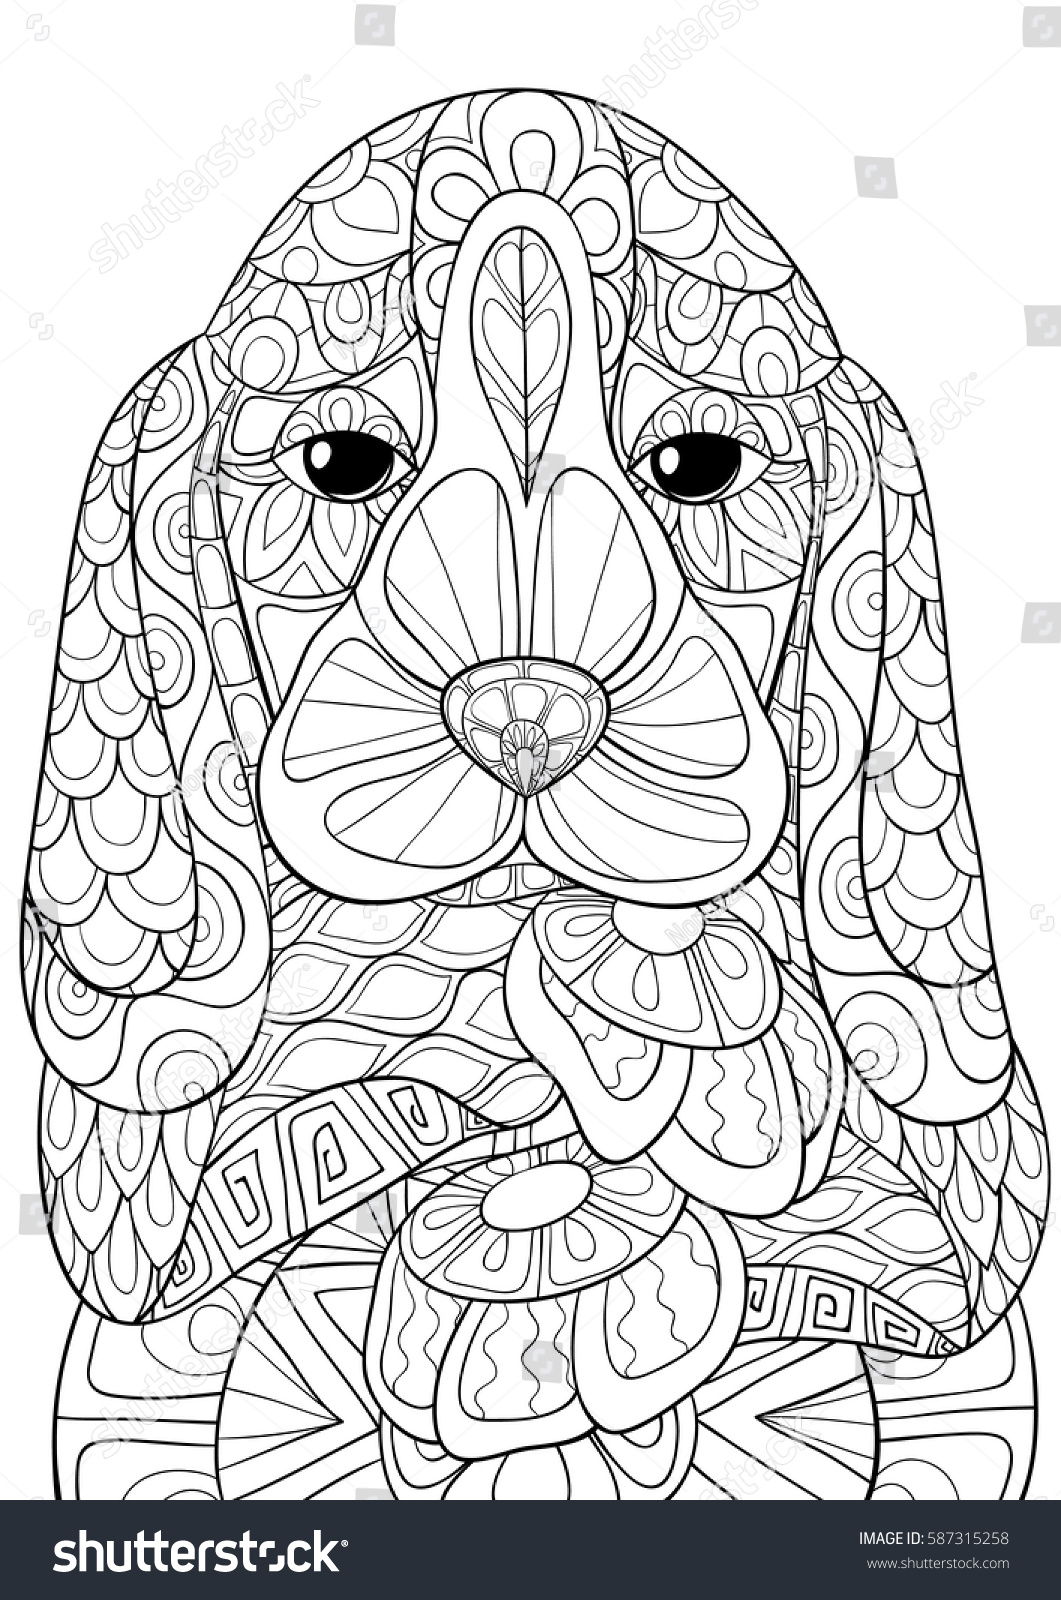 coloring bookpages beagle dog art stock vector 587315258